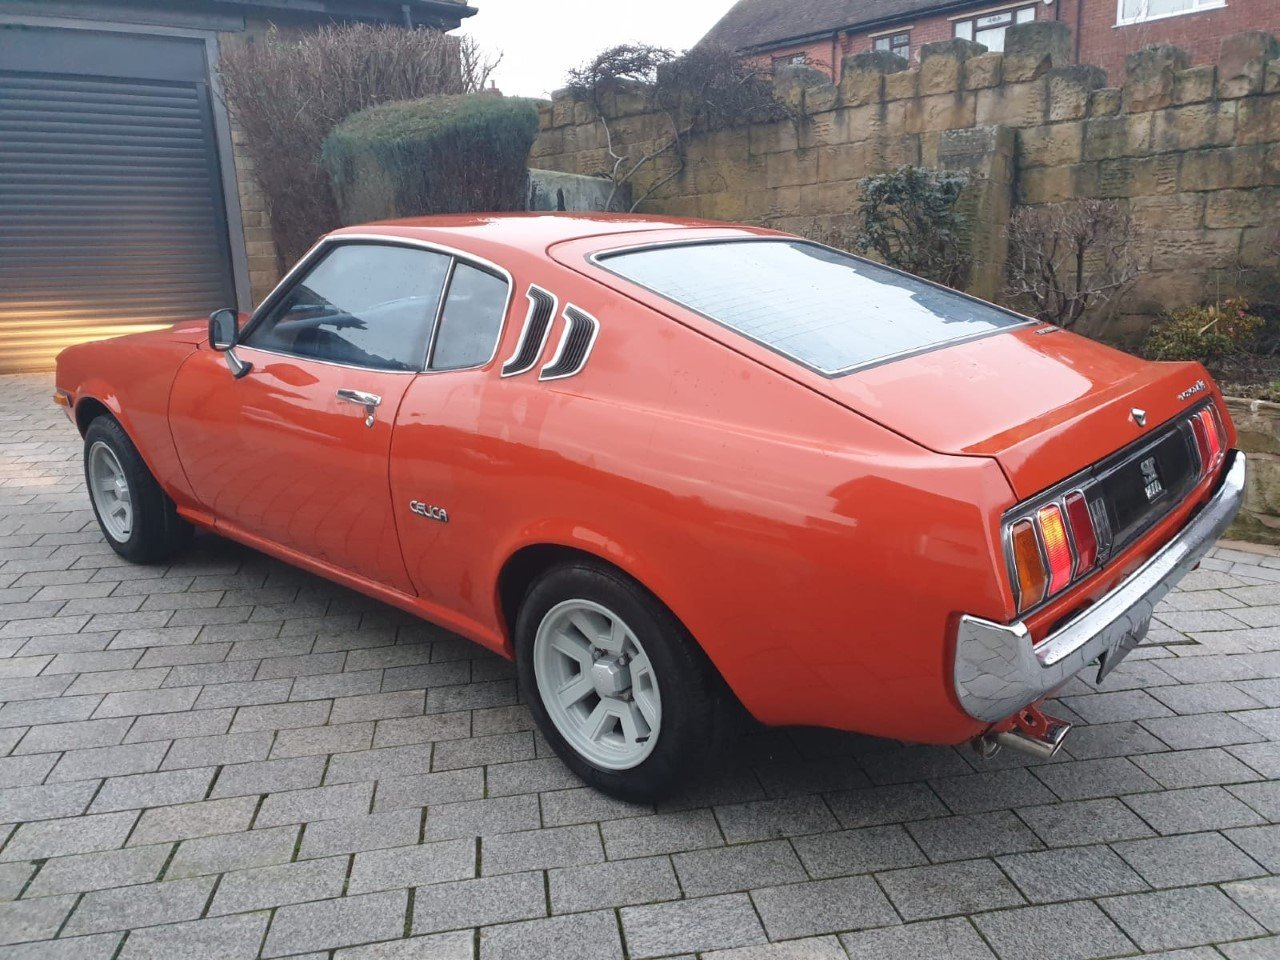 1978 Toyota celica ra28 1 owner from new uk car SOLD (picture 1 of 6)